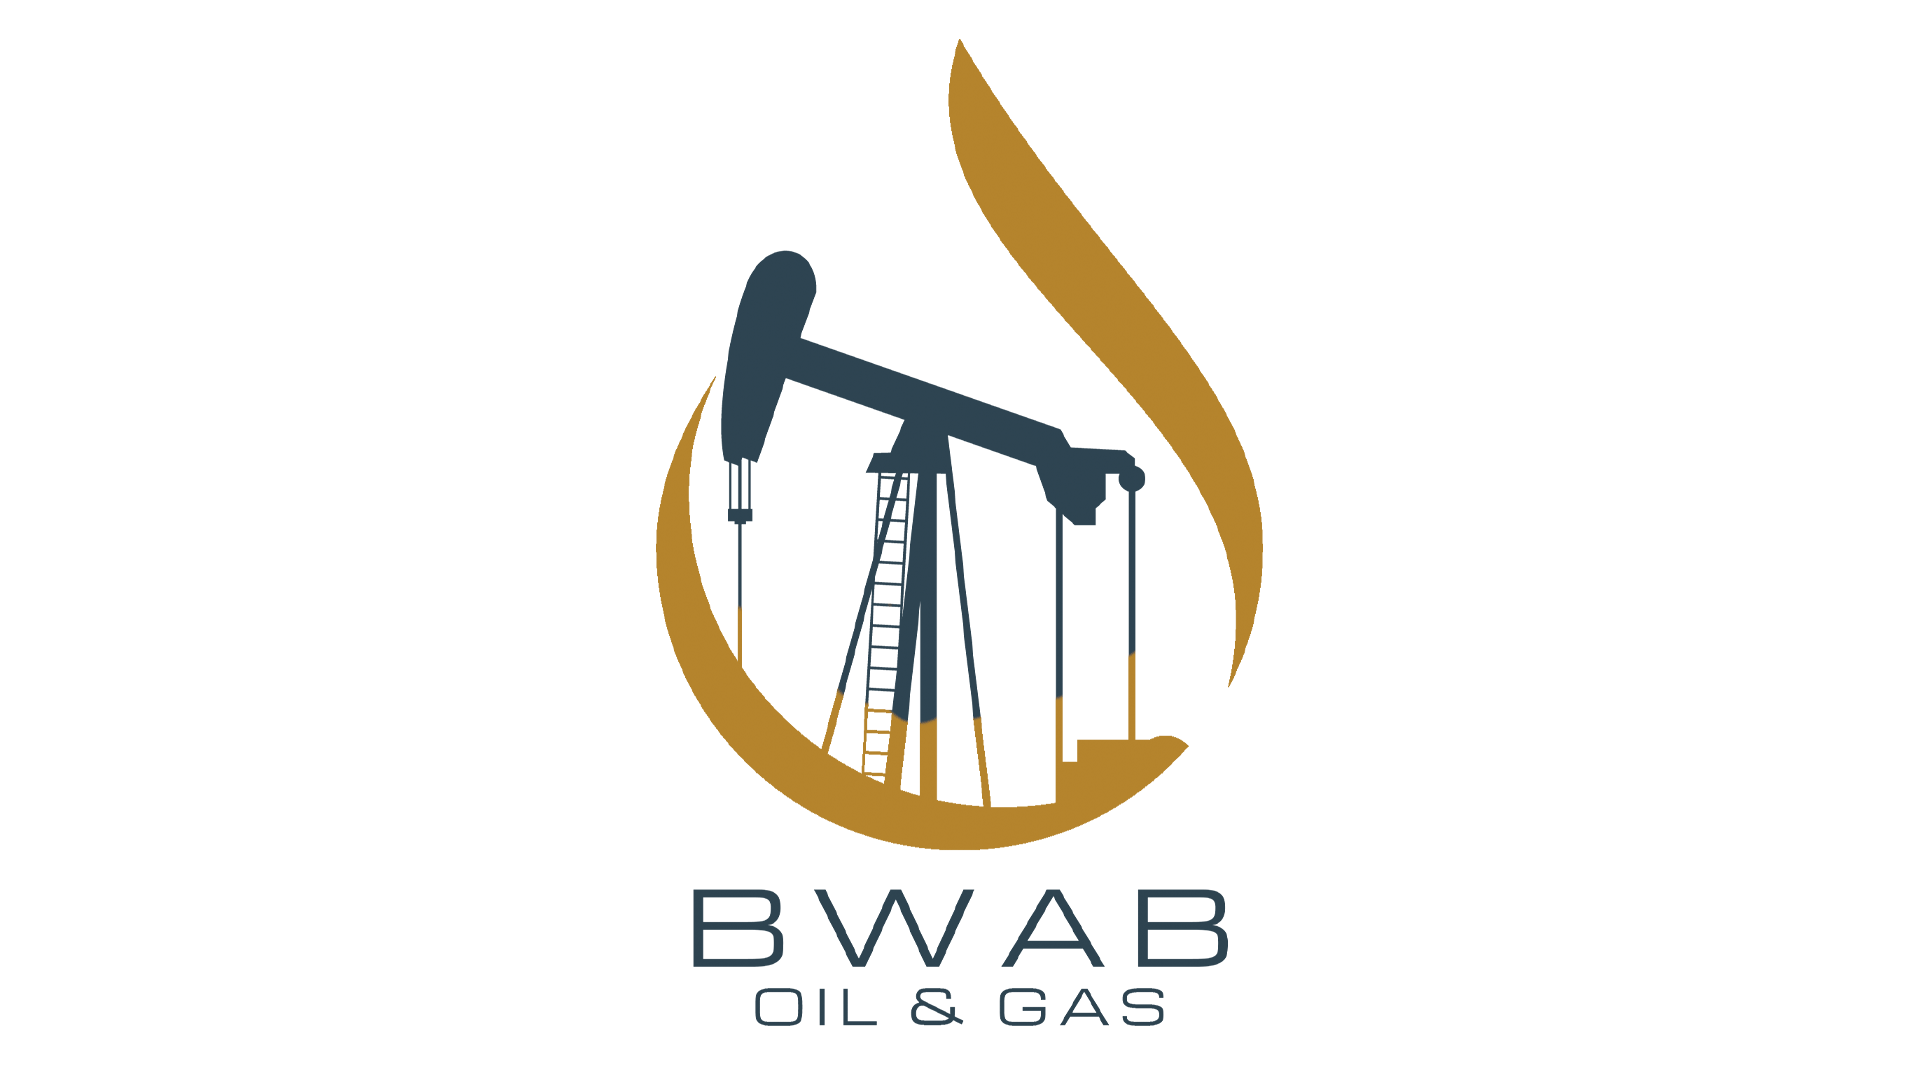 BWAB Oil and Gas